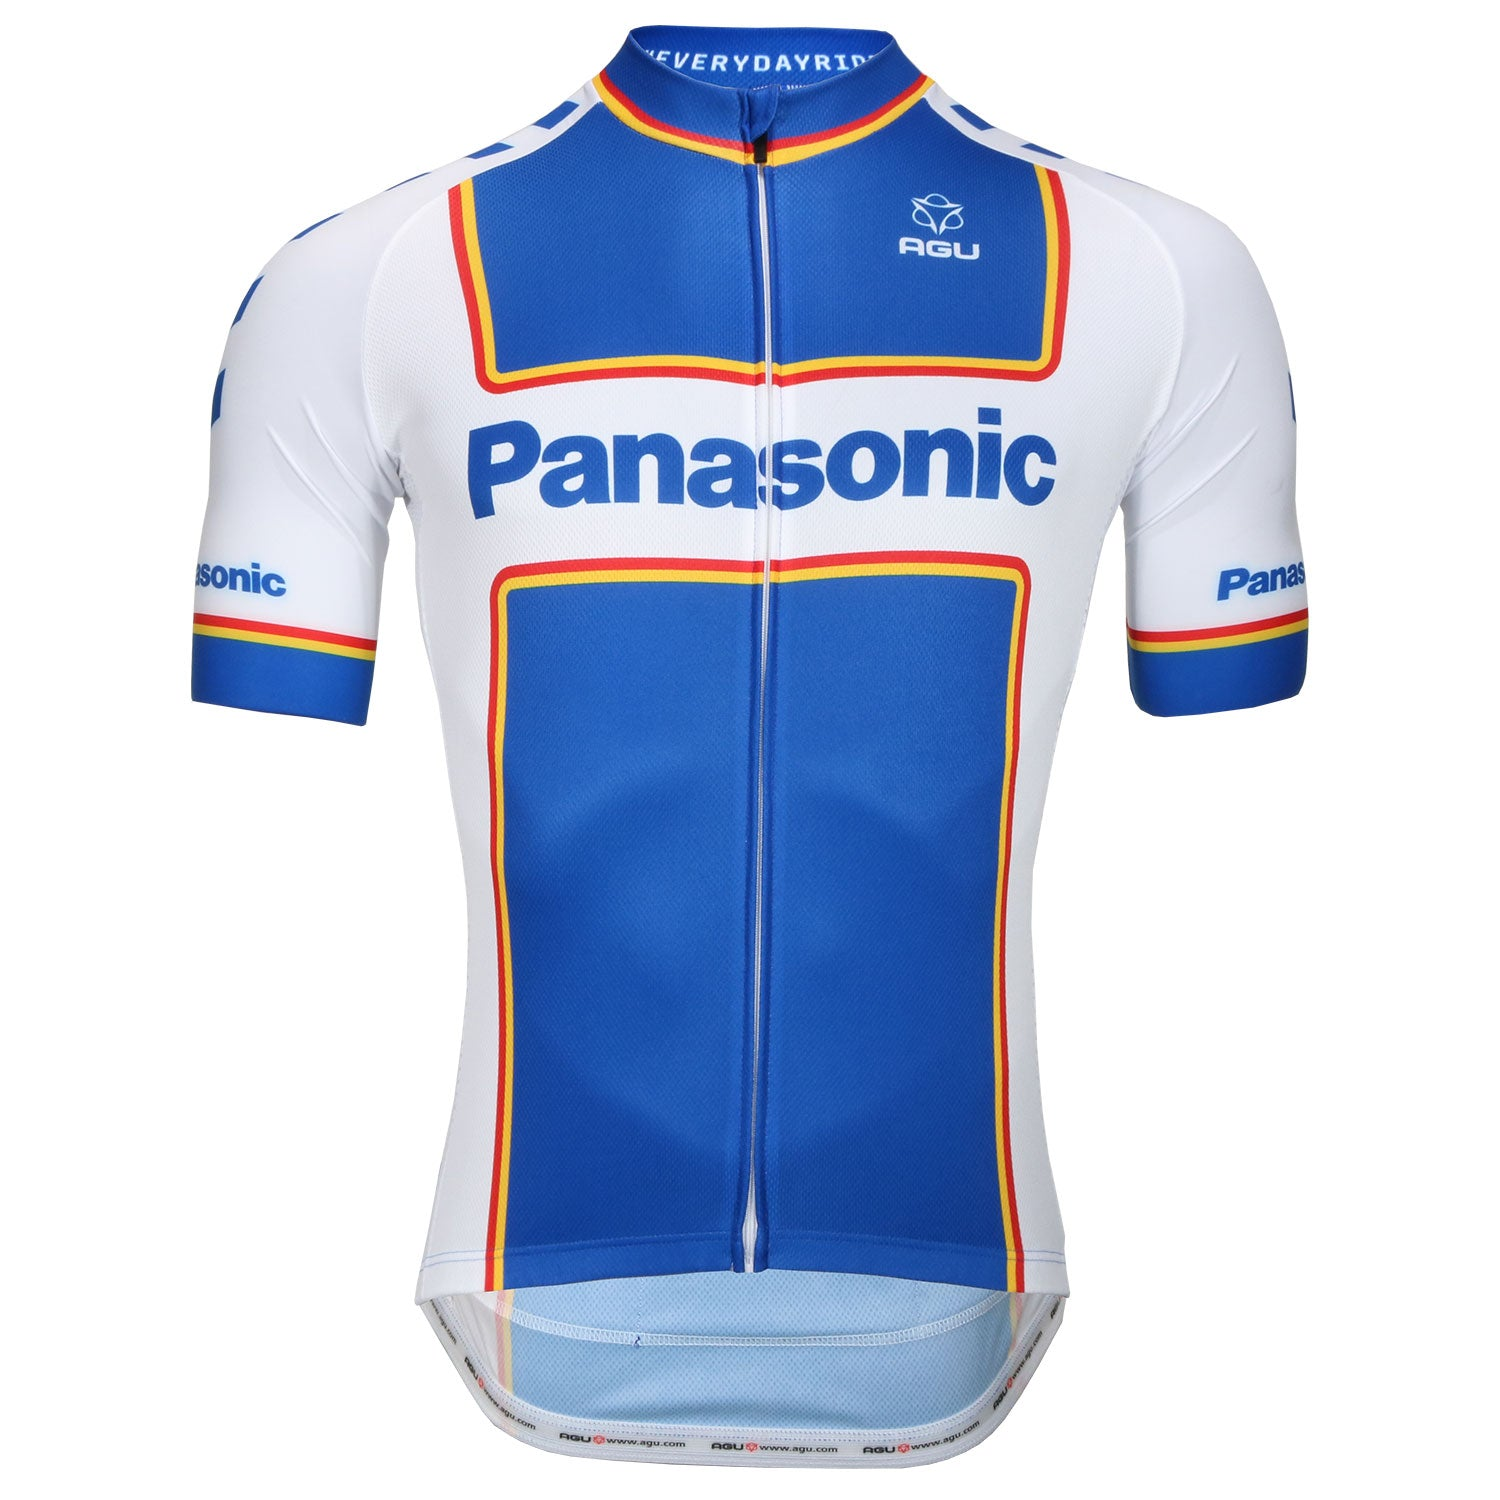 Panasonic retro short sleeve jersey by AGU